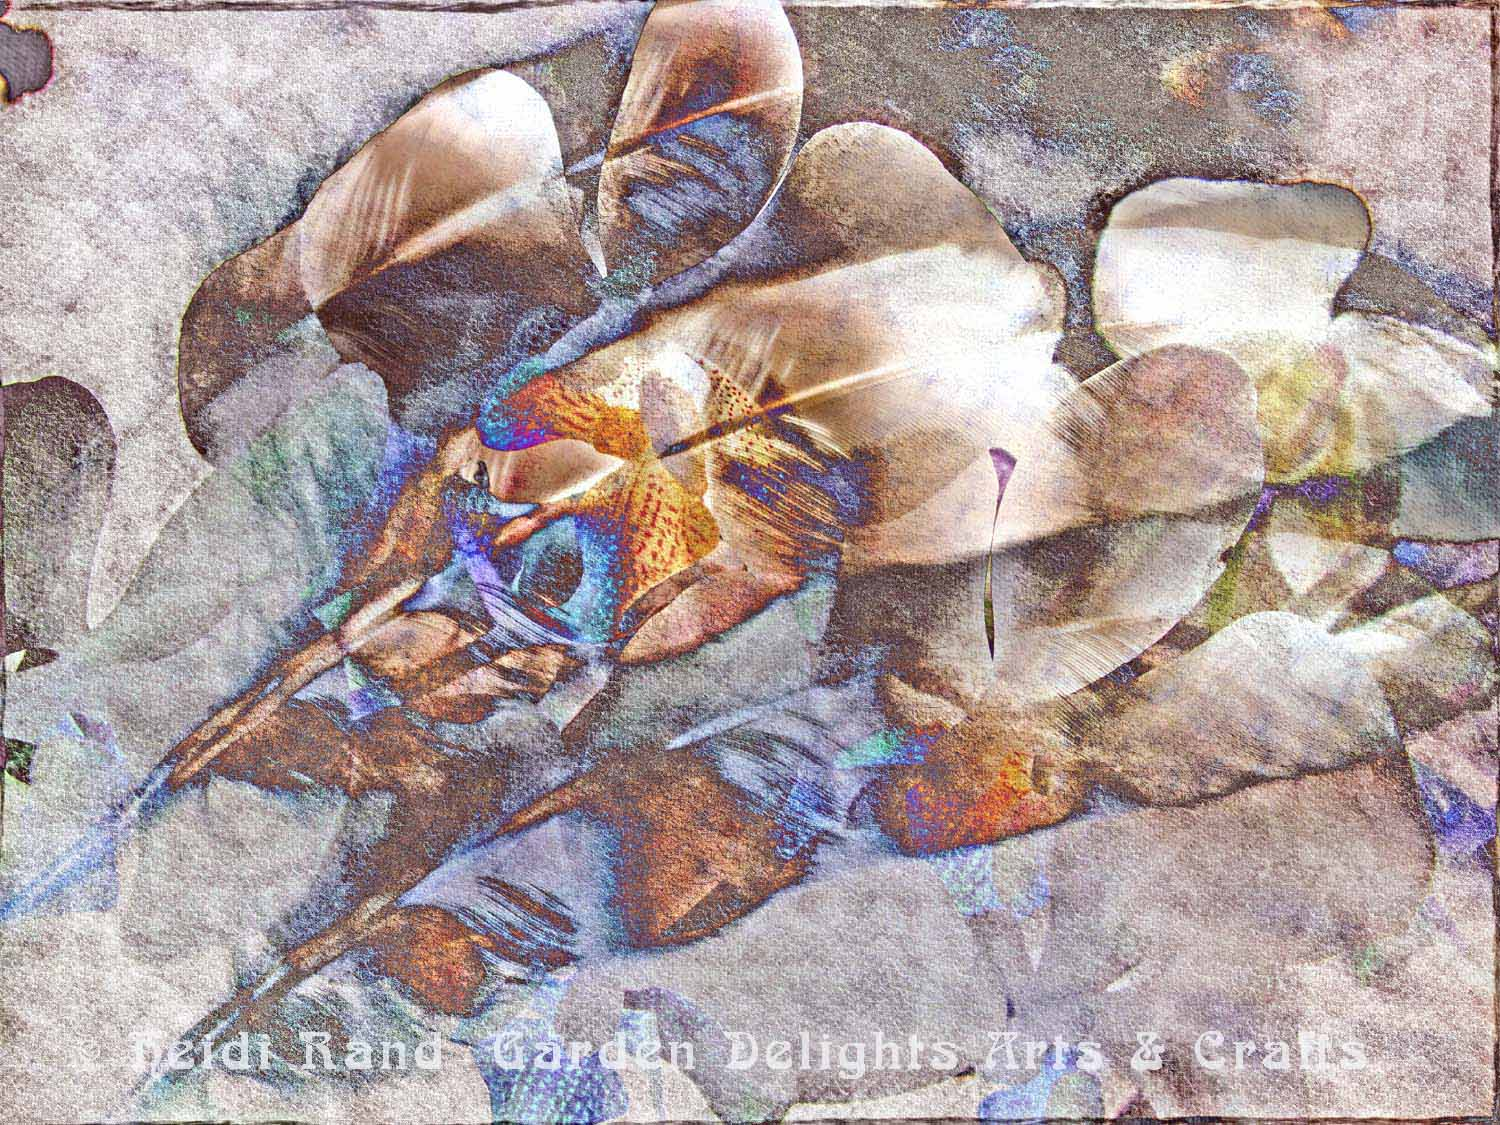 Phalaenopsis and Feather collage